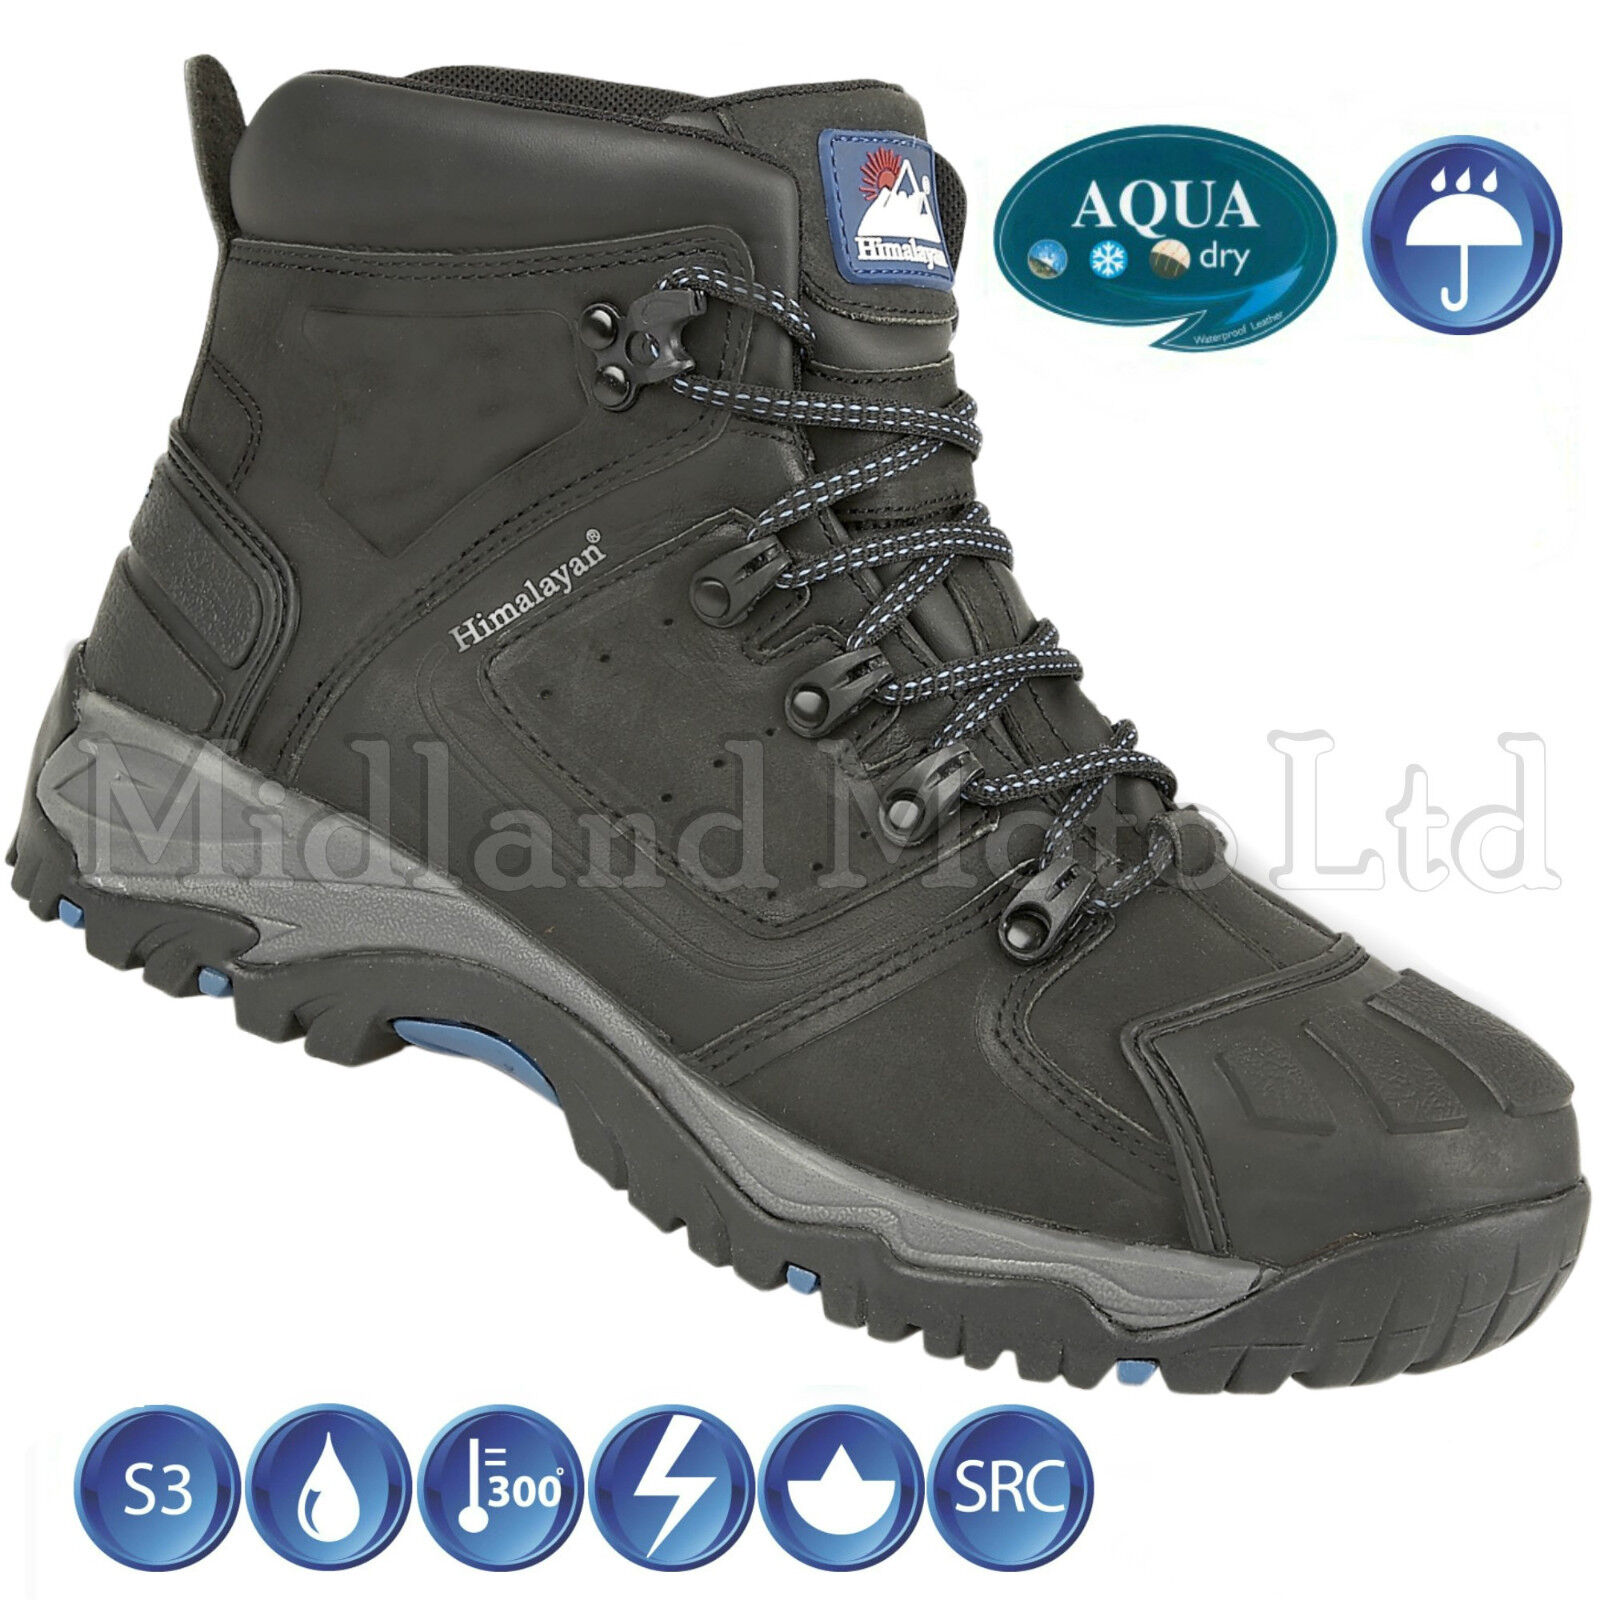 Waterproof Steel Toe Cap S3 5206 Nubuck Himalayan Safety Stiefel 5206 S3 9f80b5